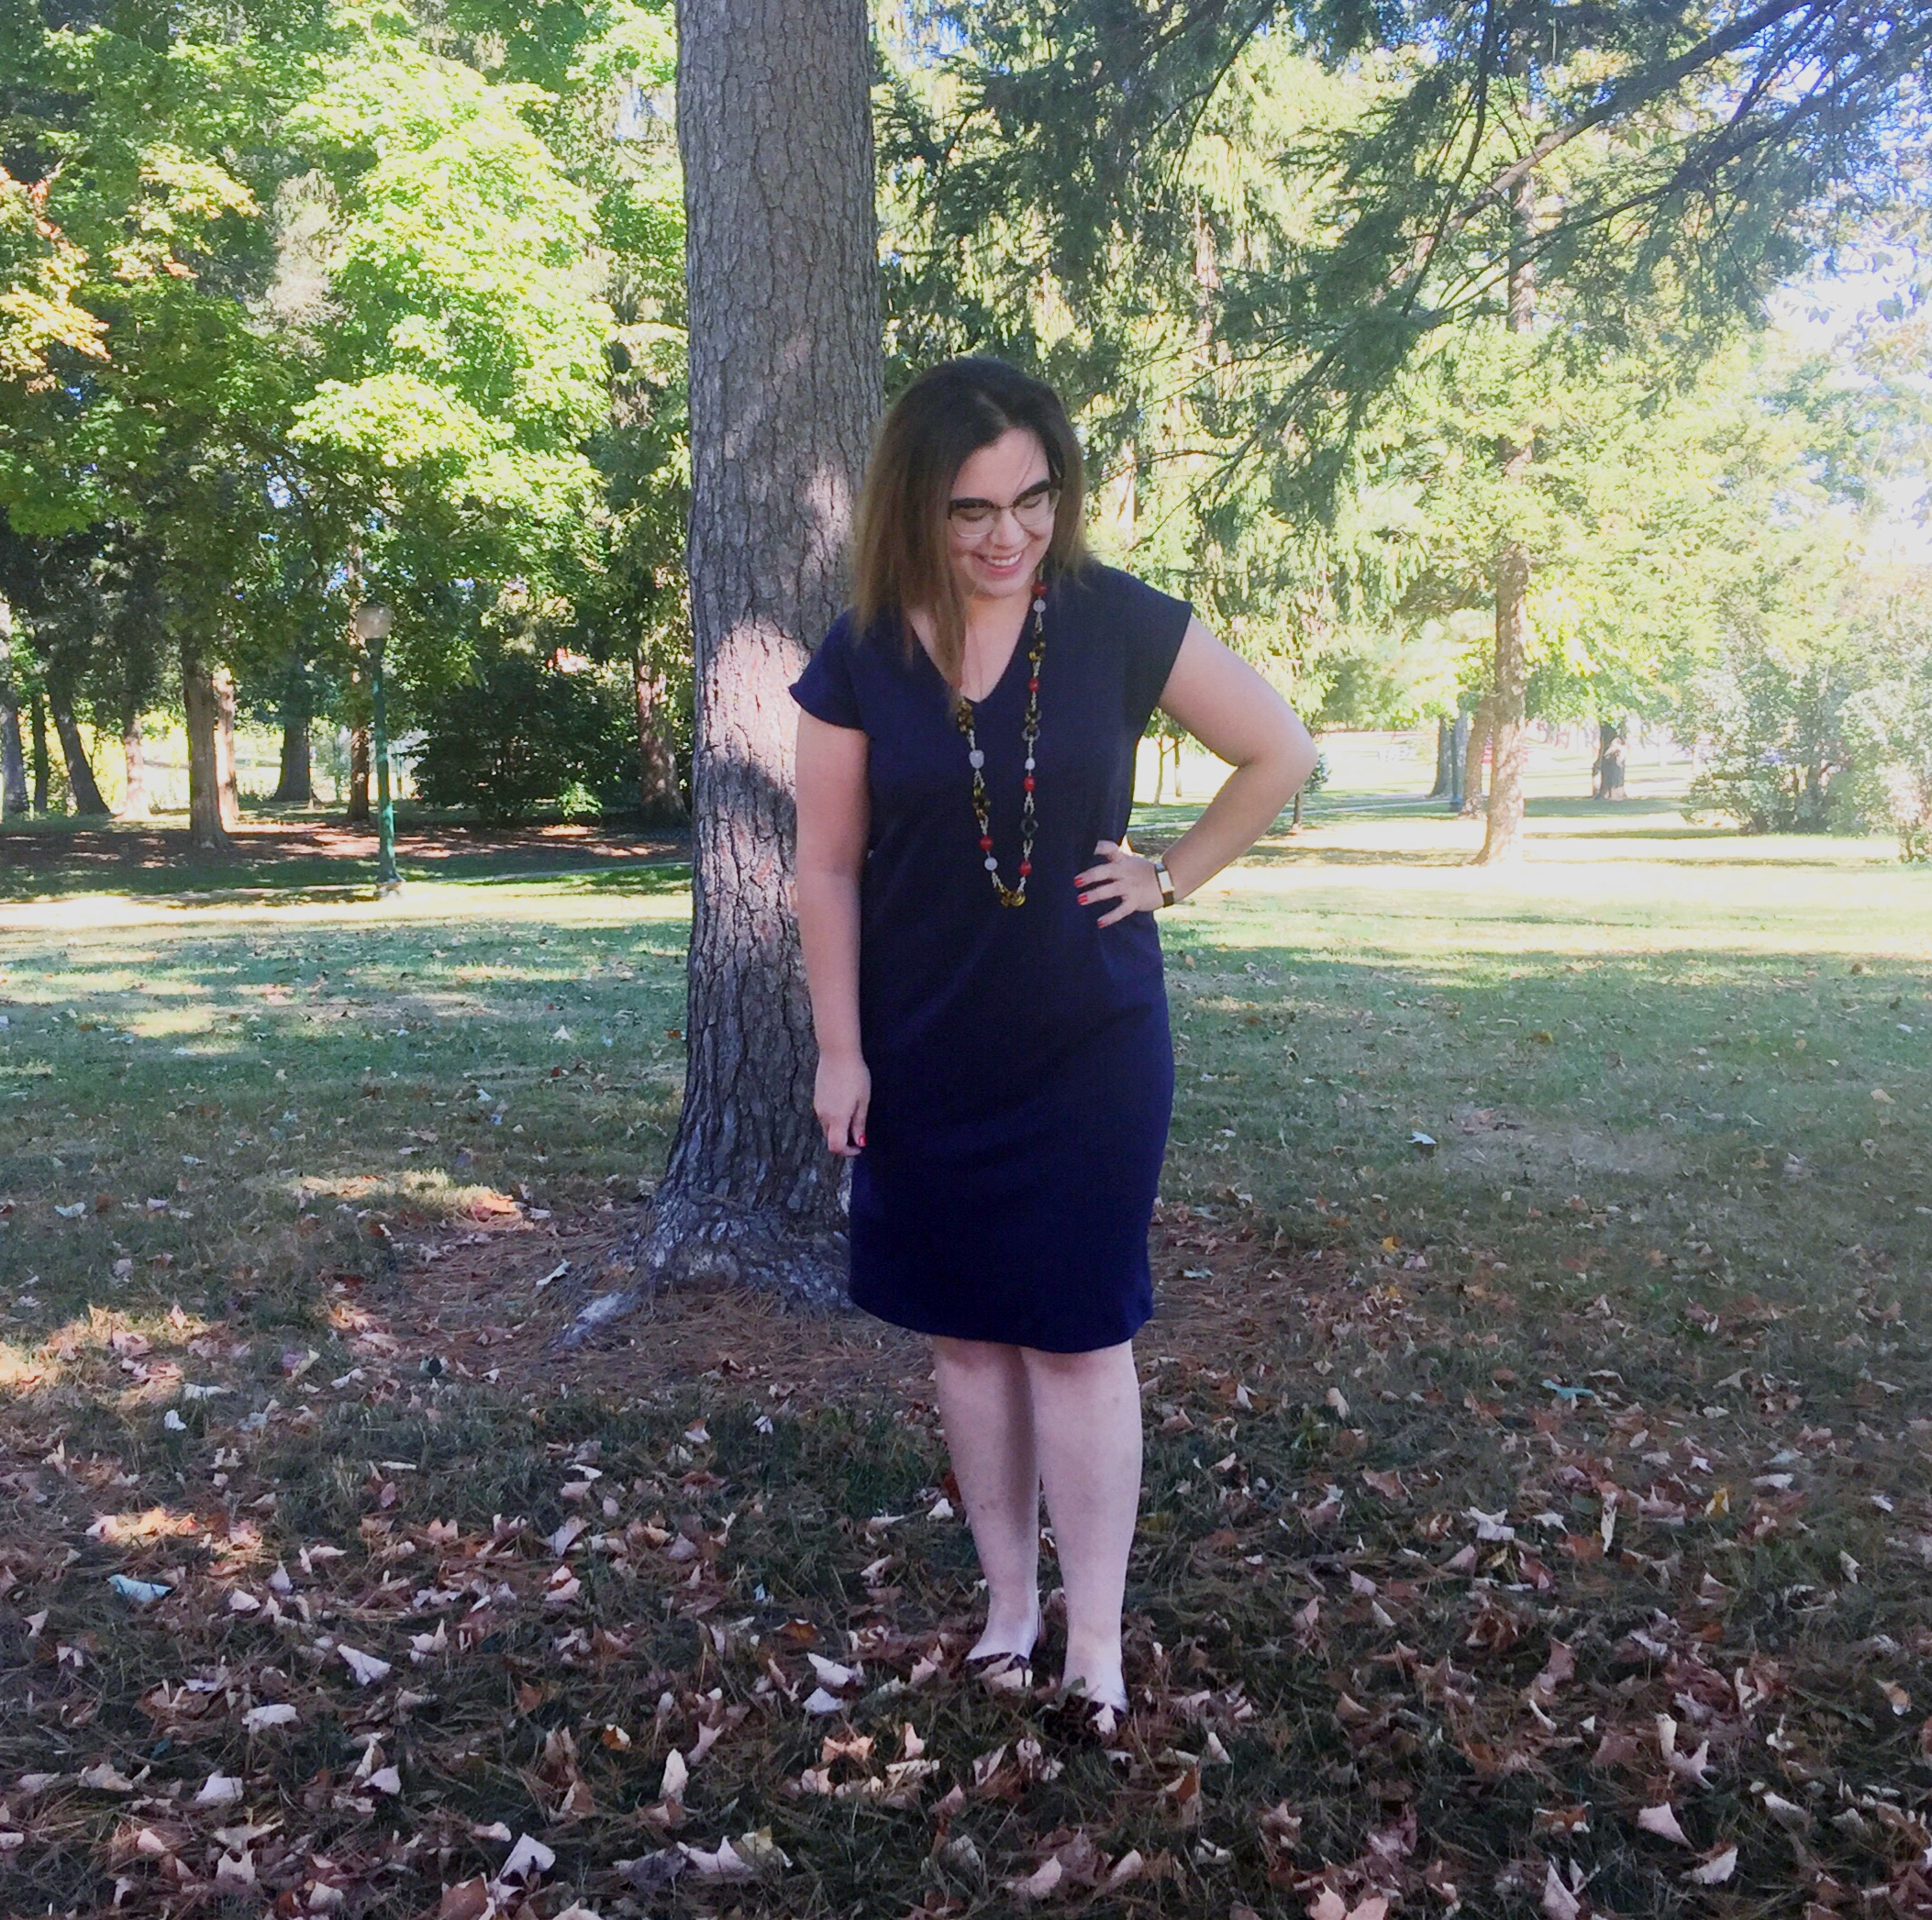 Work-Appropriate Secret Pajamas!: One dress, Three ways